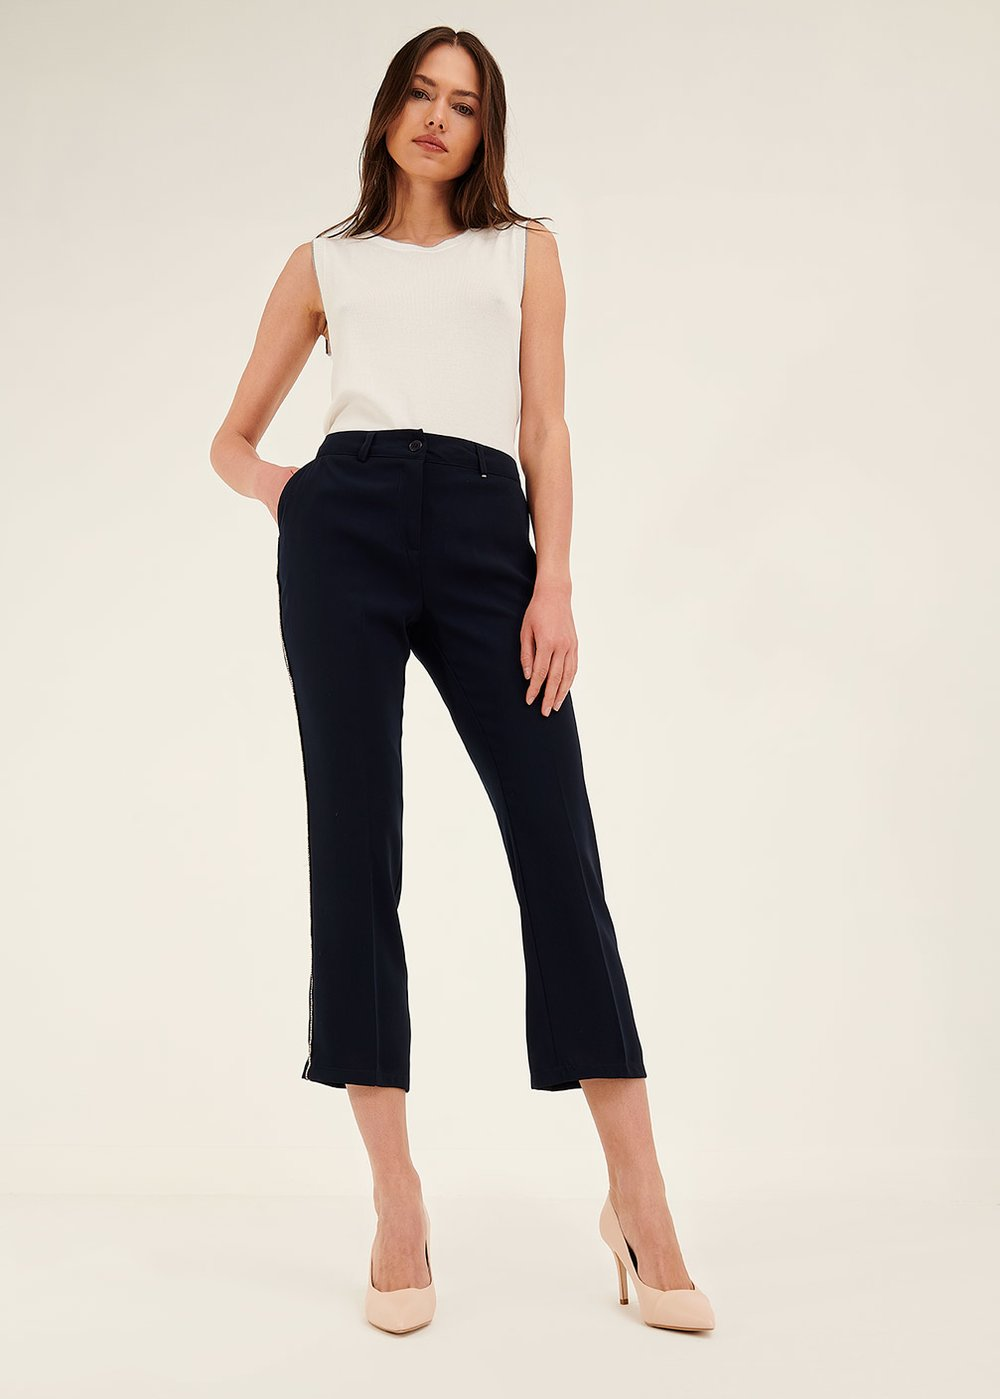 Paolo trousers with rhinestone trimmings - Blue Navy - Woman